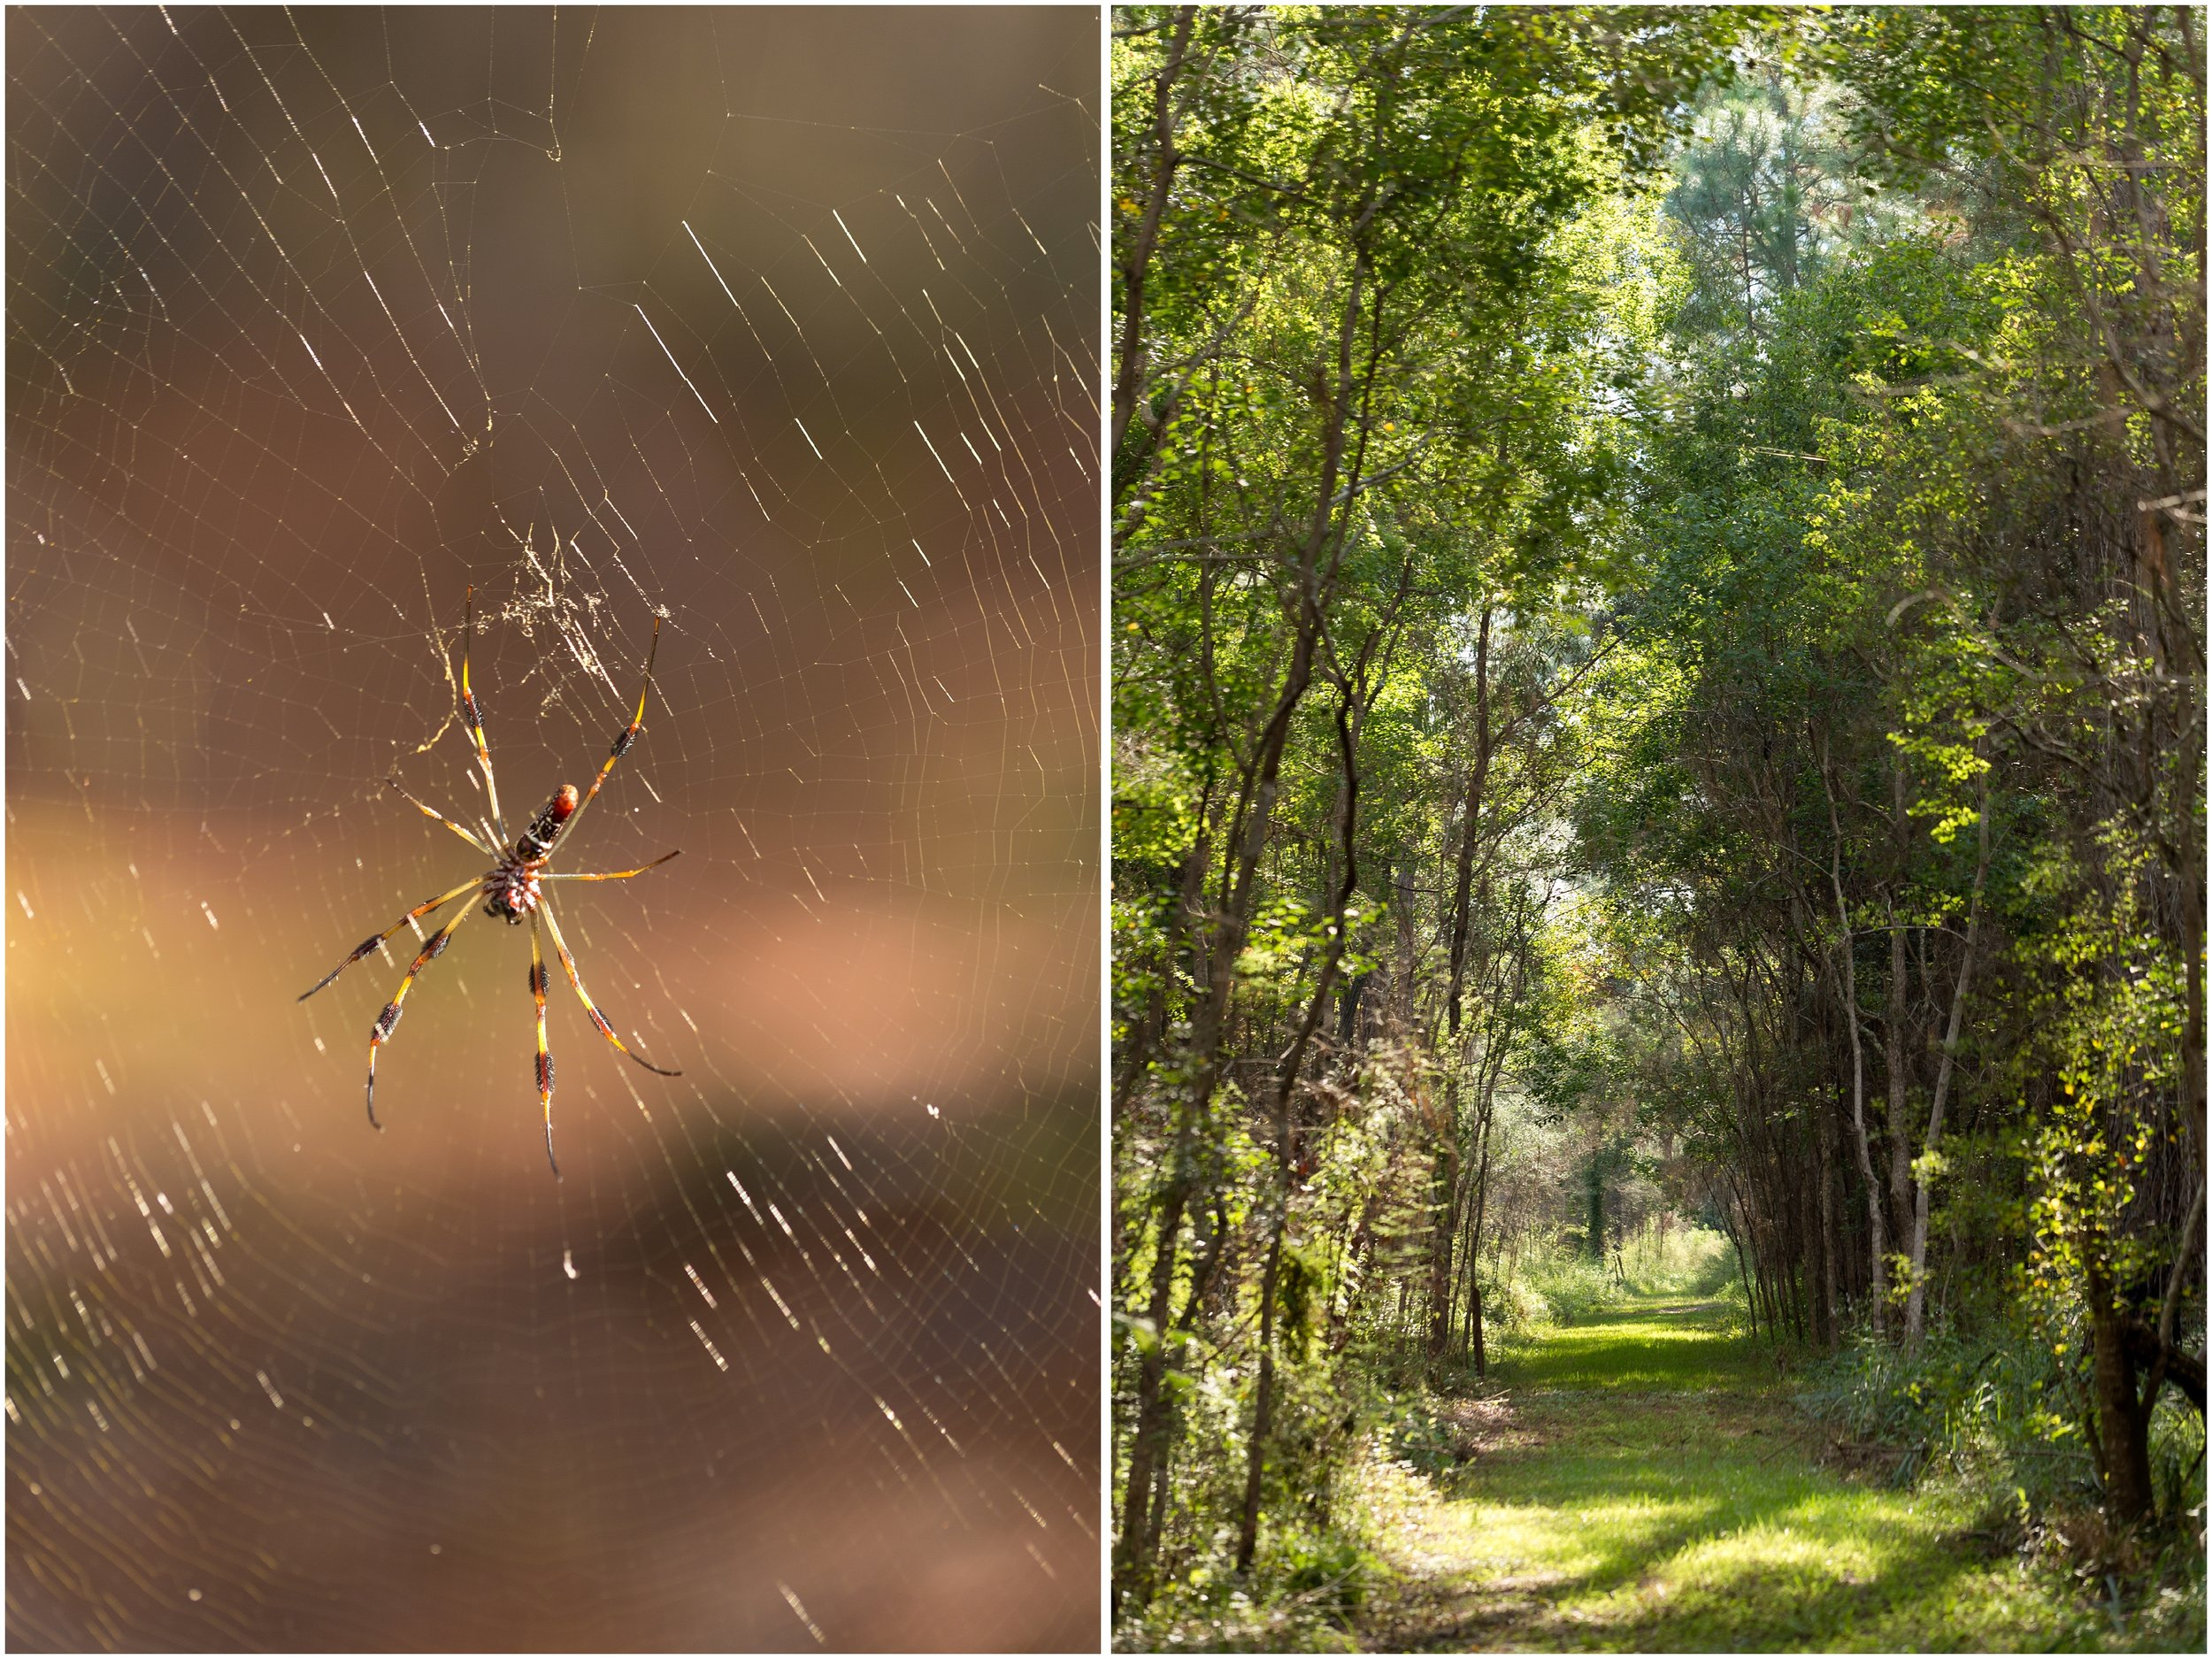 spider and natura trail